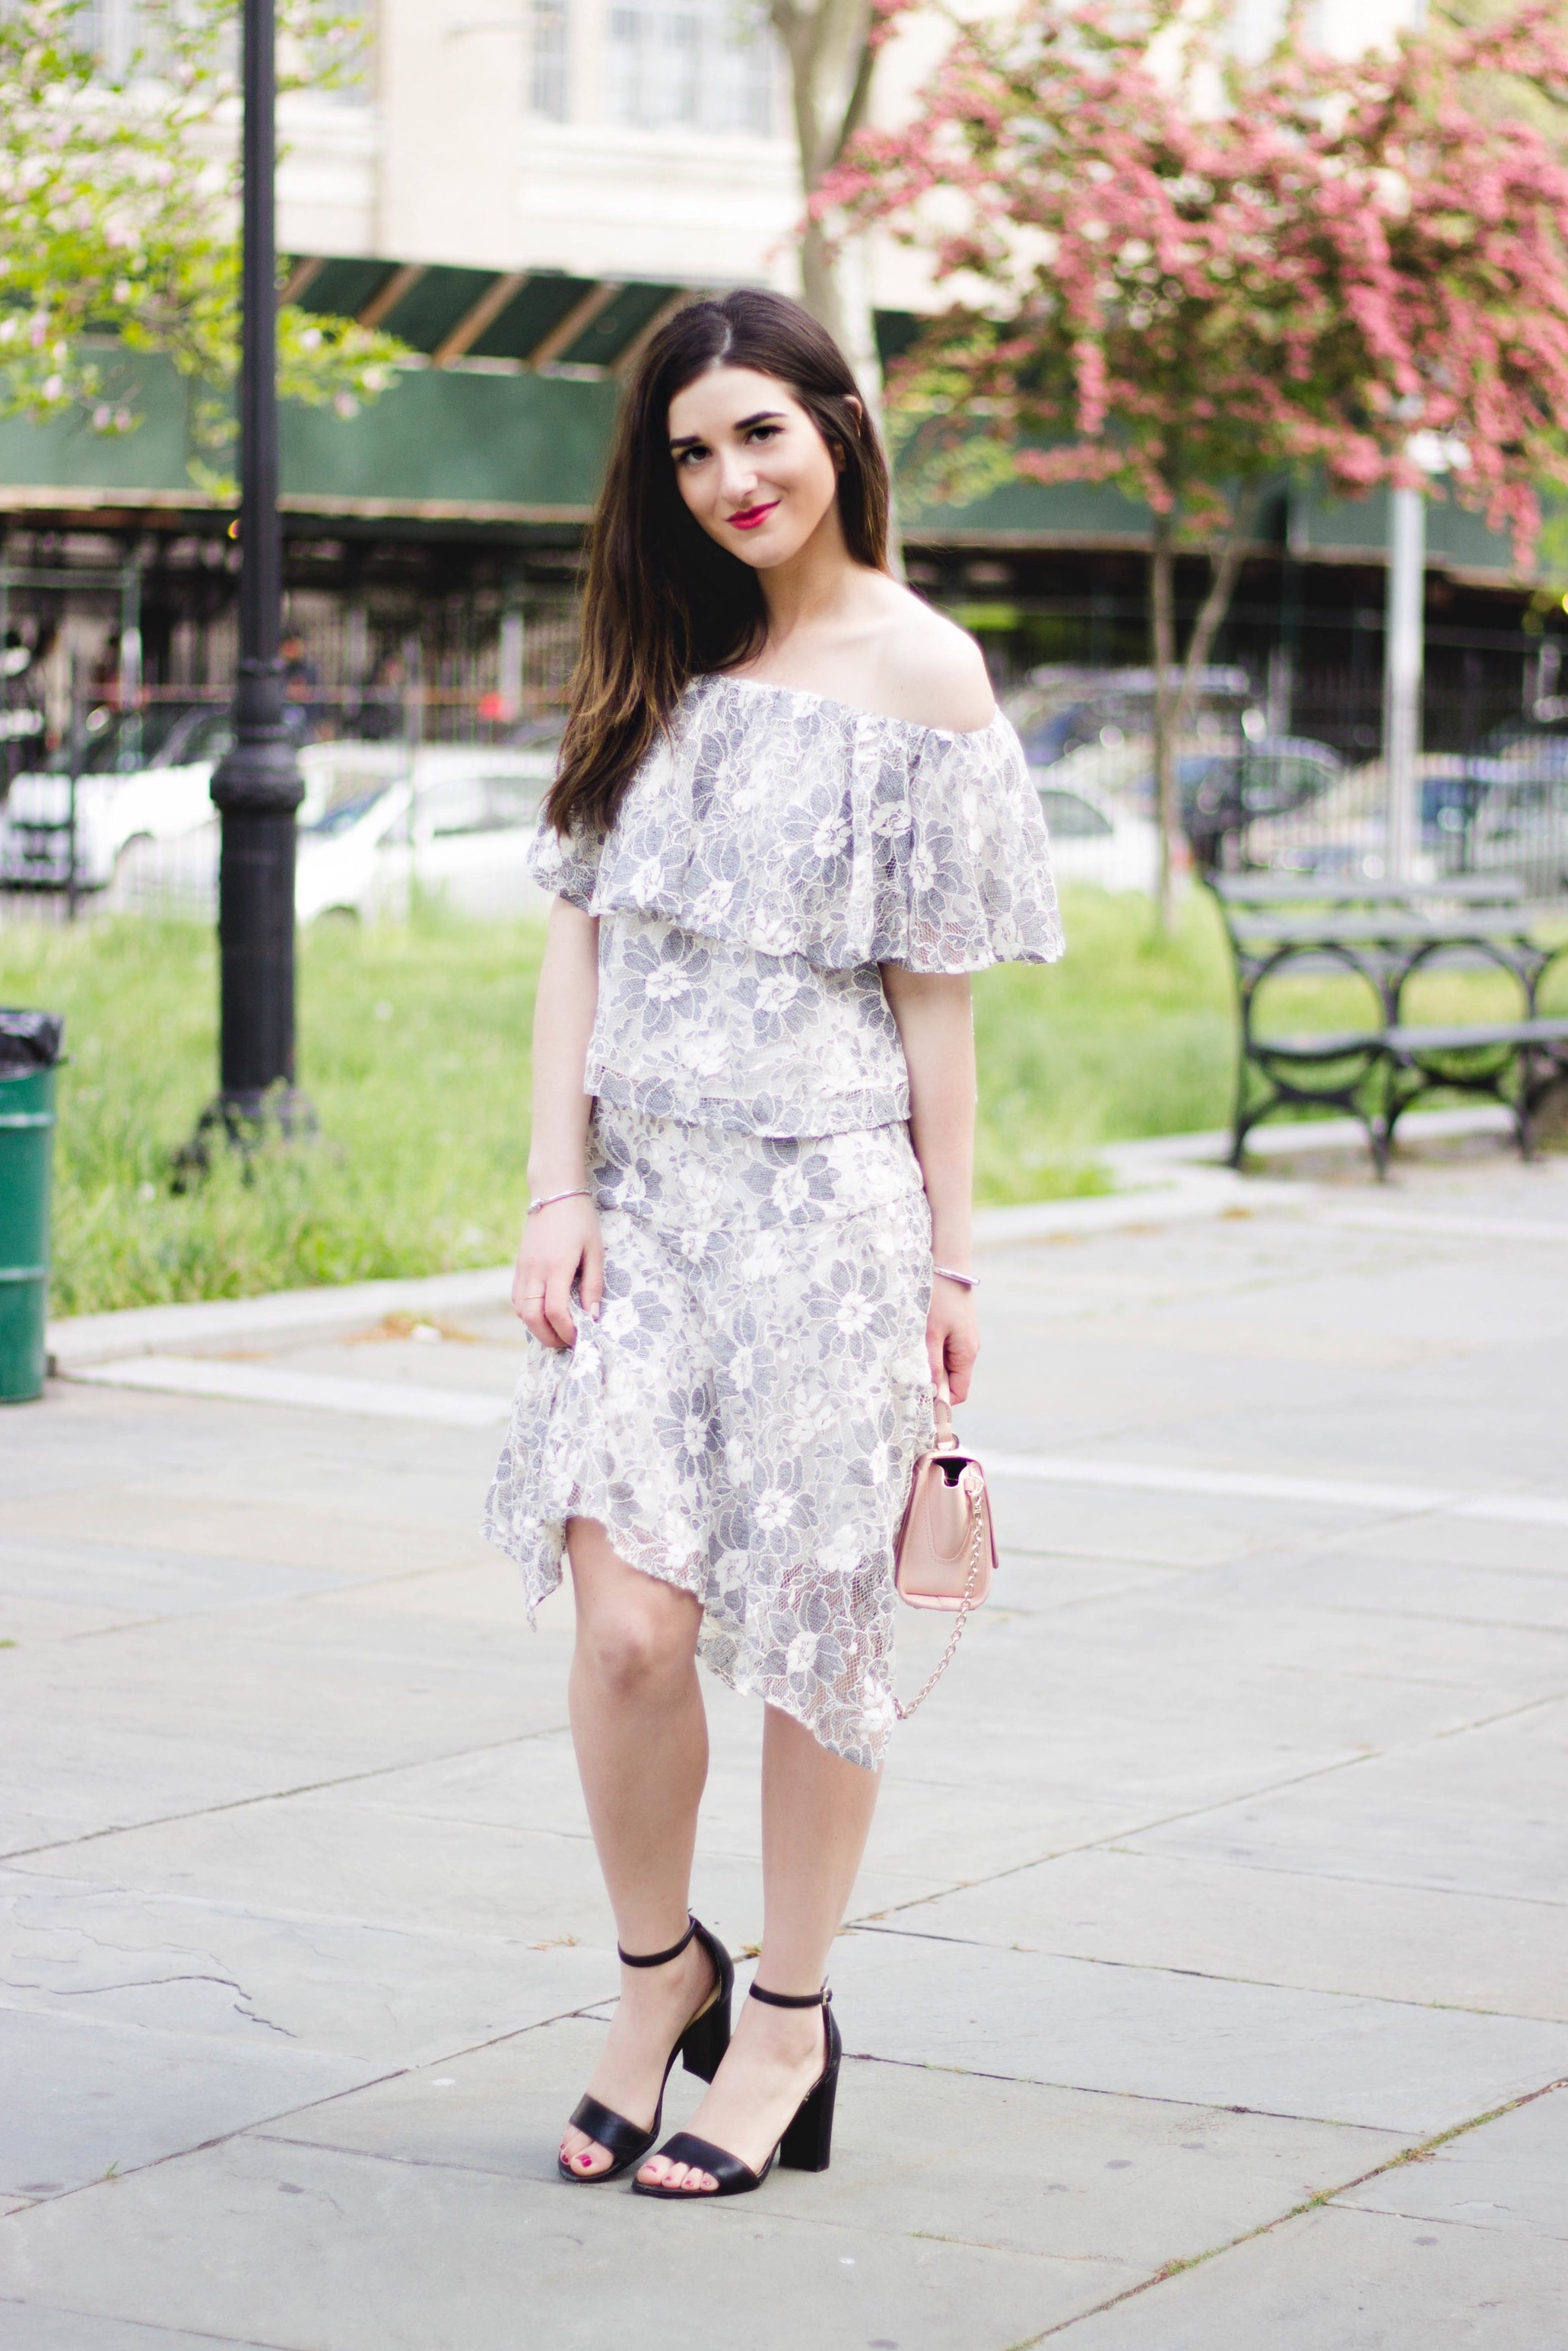 Rachel Roy Floral Lace Set 10 Weird Things Bloggers Do Esther Santer Fashion Blog NYC Street Style Blogger Outfit OOTD Trendy Girl Women Black Heels Sandals Shoes ink Zac Posen Bag Bracelets Accessories Beautiful Photoshoot Shop Summer Wear Feminine.jpg